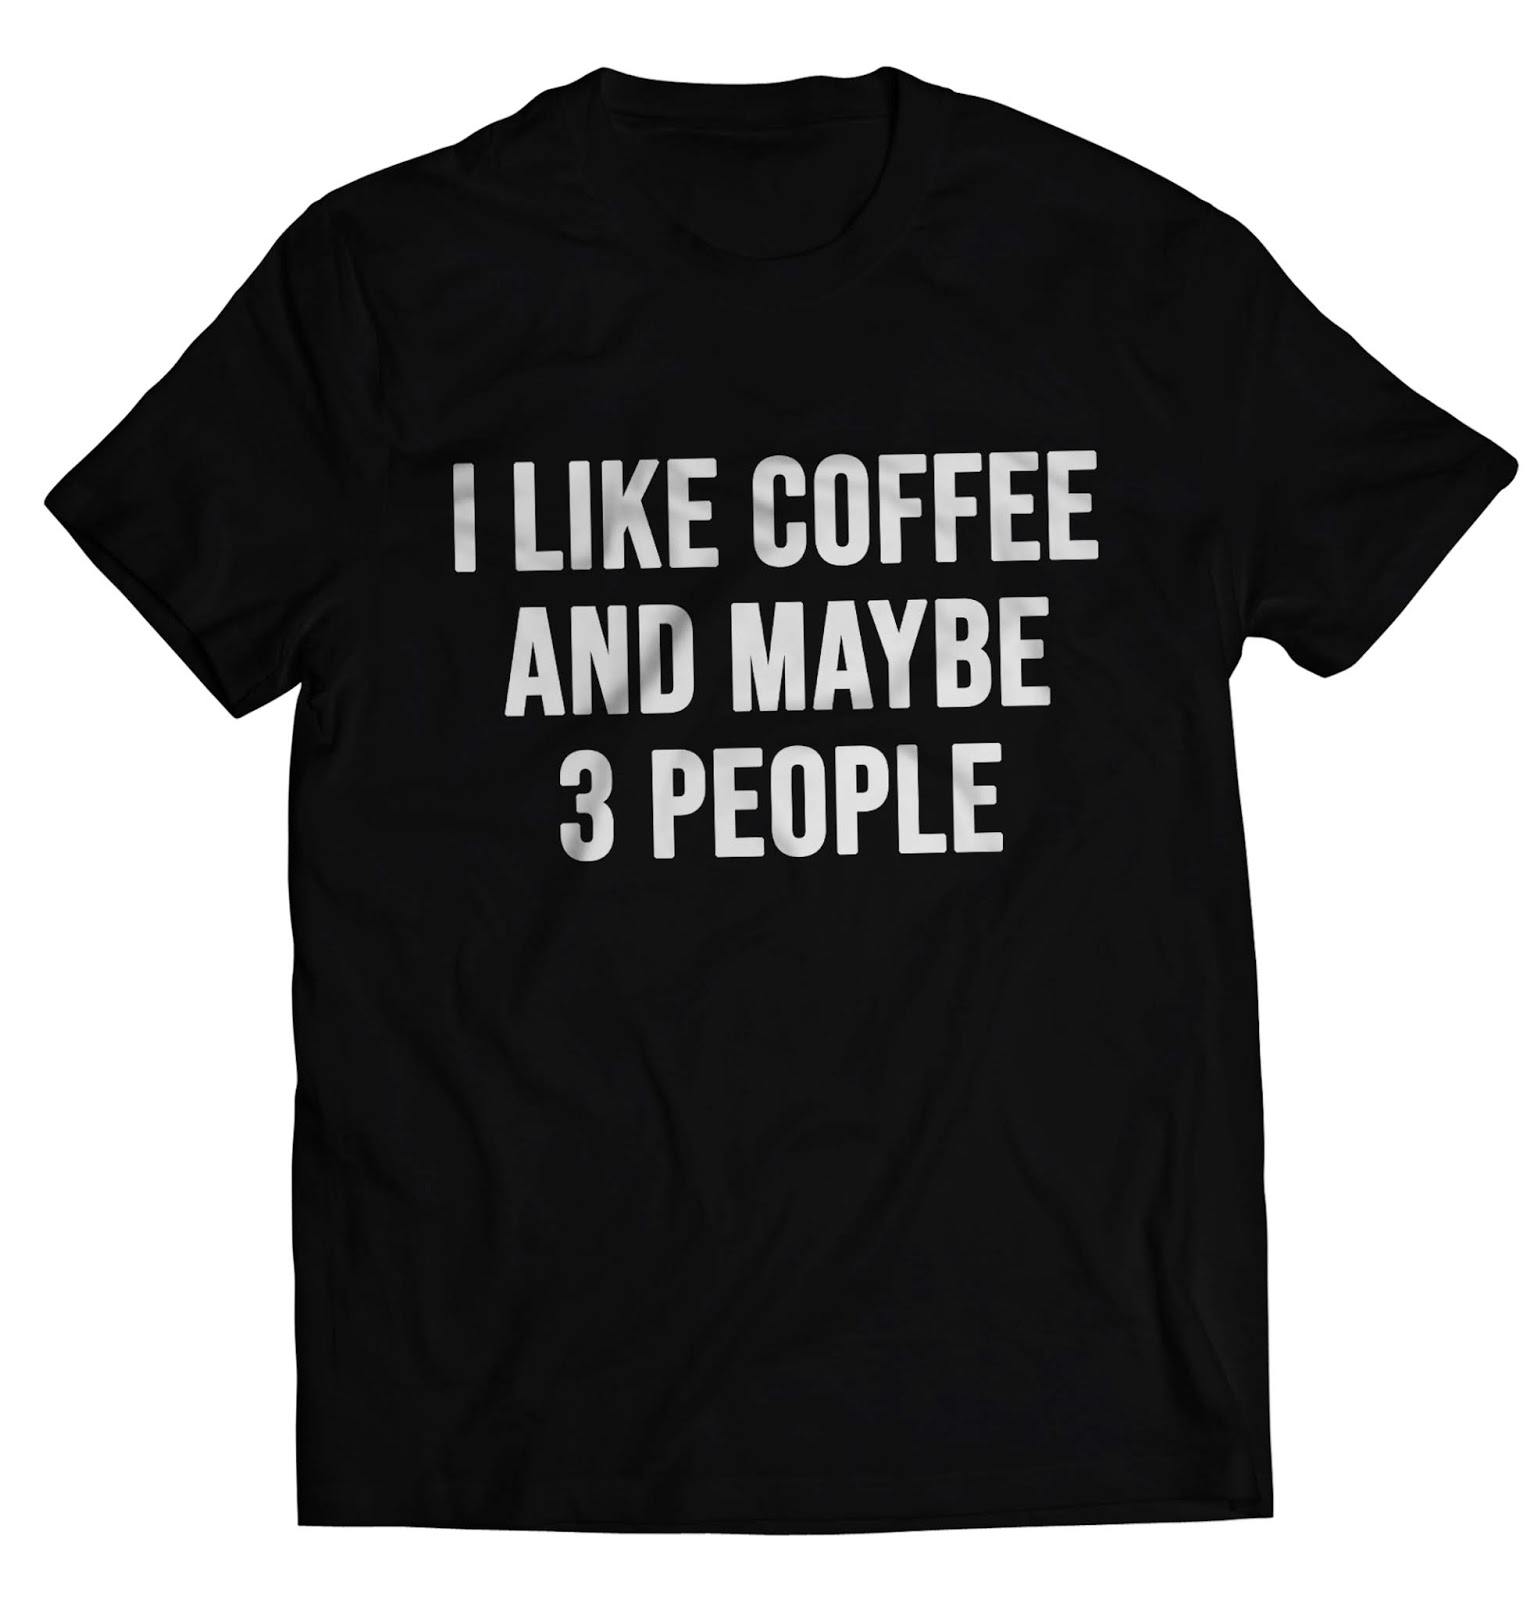 You Can Order This Amazing Coffee T Shirt Design On Several Different Sizes Colors And Styles Of Shirts Including Short Sleeve Hoodies